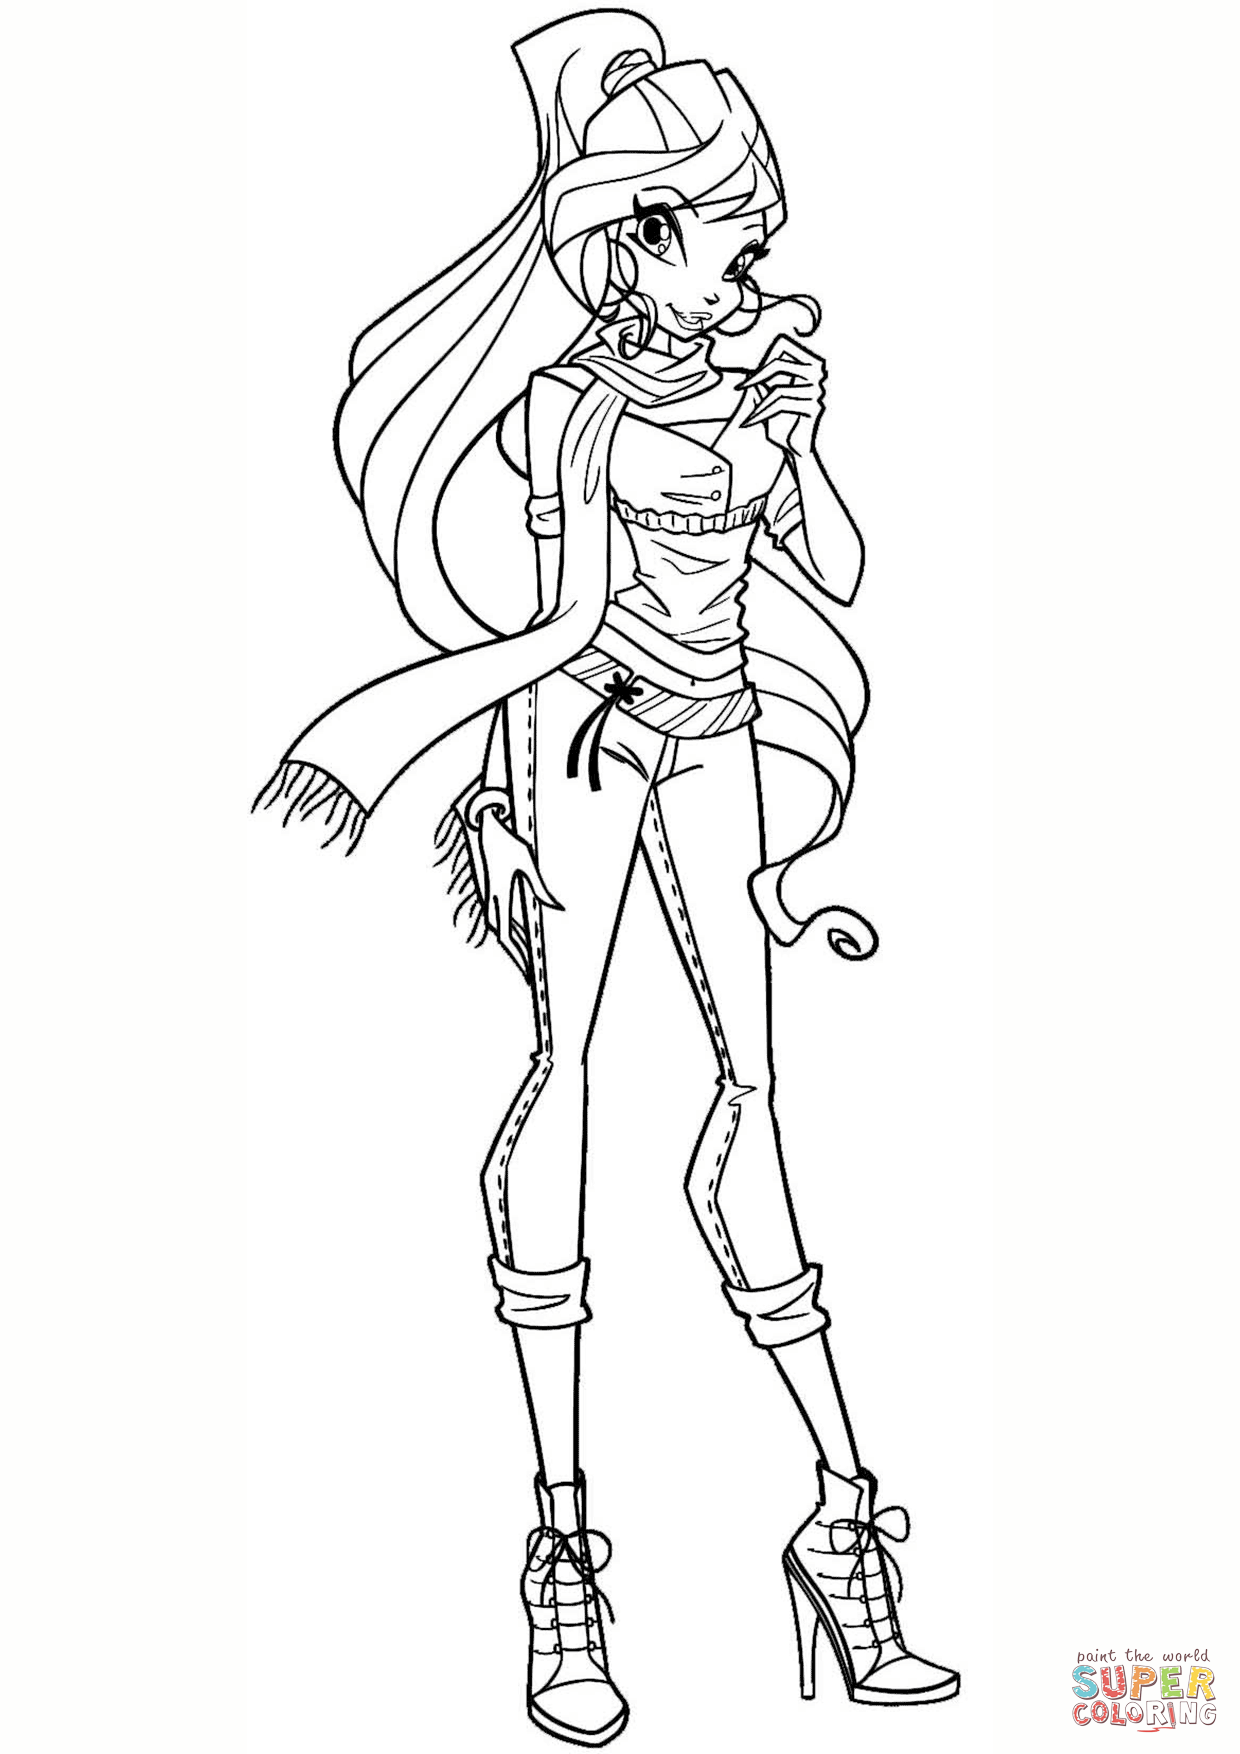 Winx drawing pages - Winx Coloring Pages With Winx Bloom Page